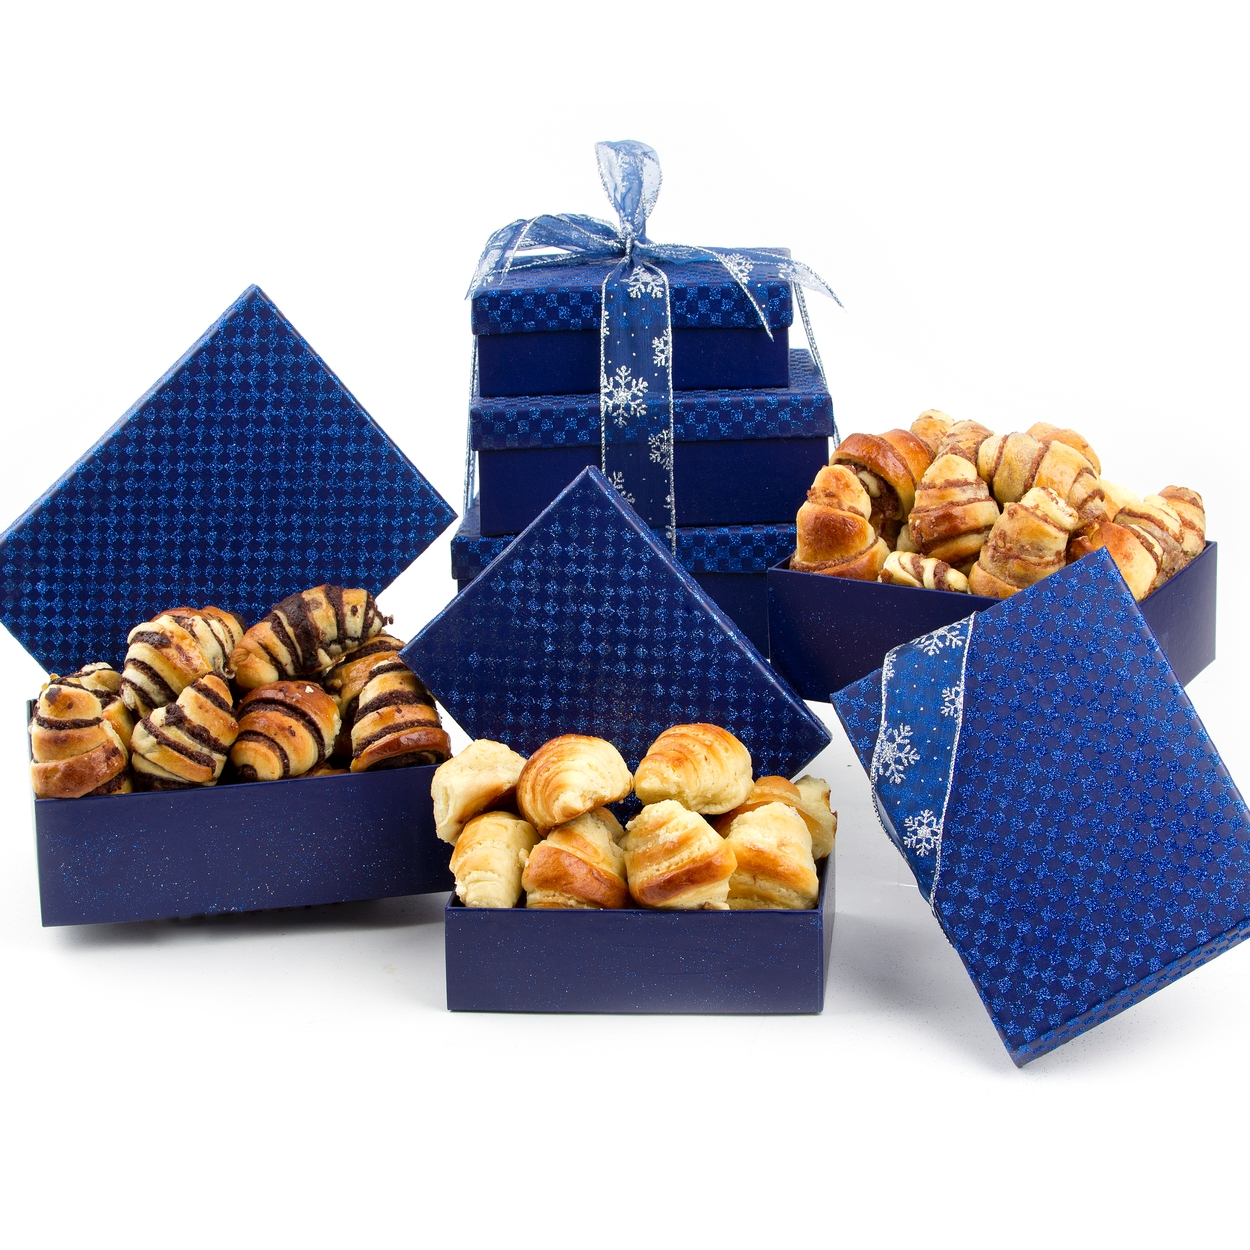 Holiday 3-Tier Rugelach Pastry Gift Tower • Holiday Nut Gift ...